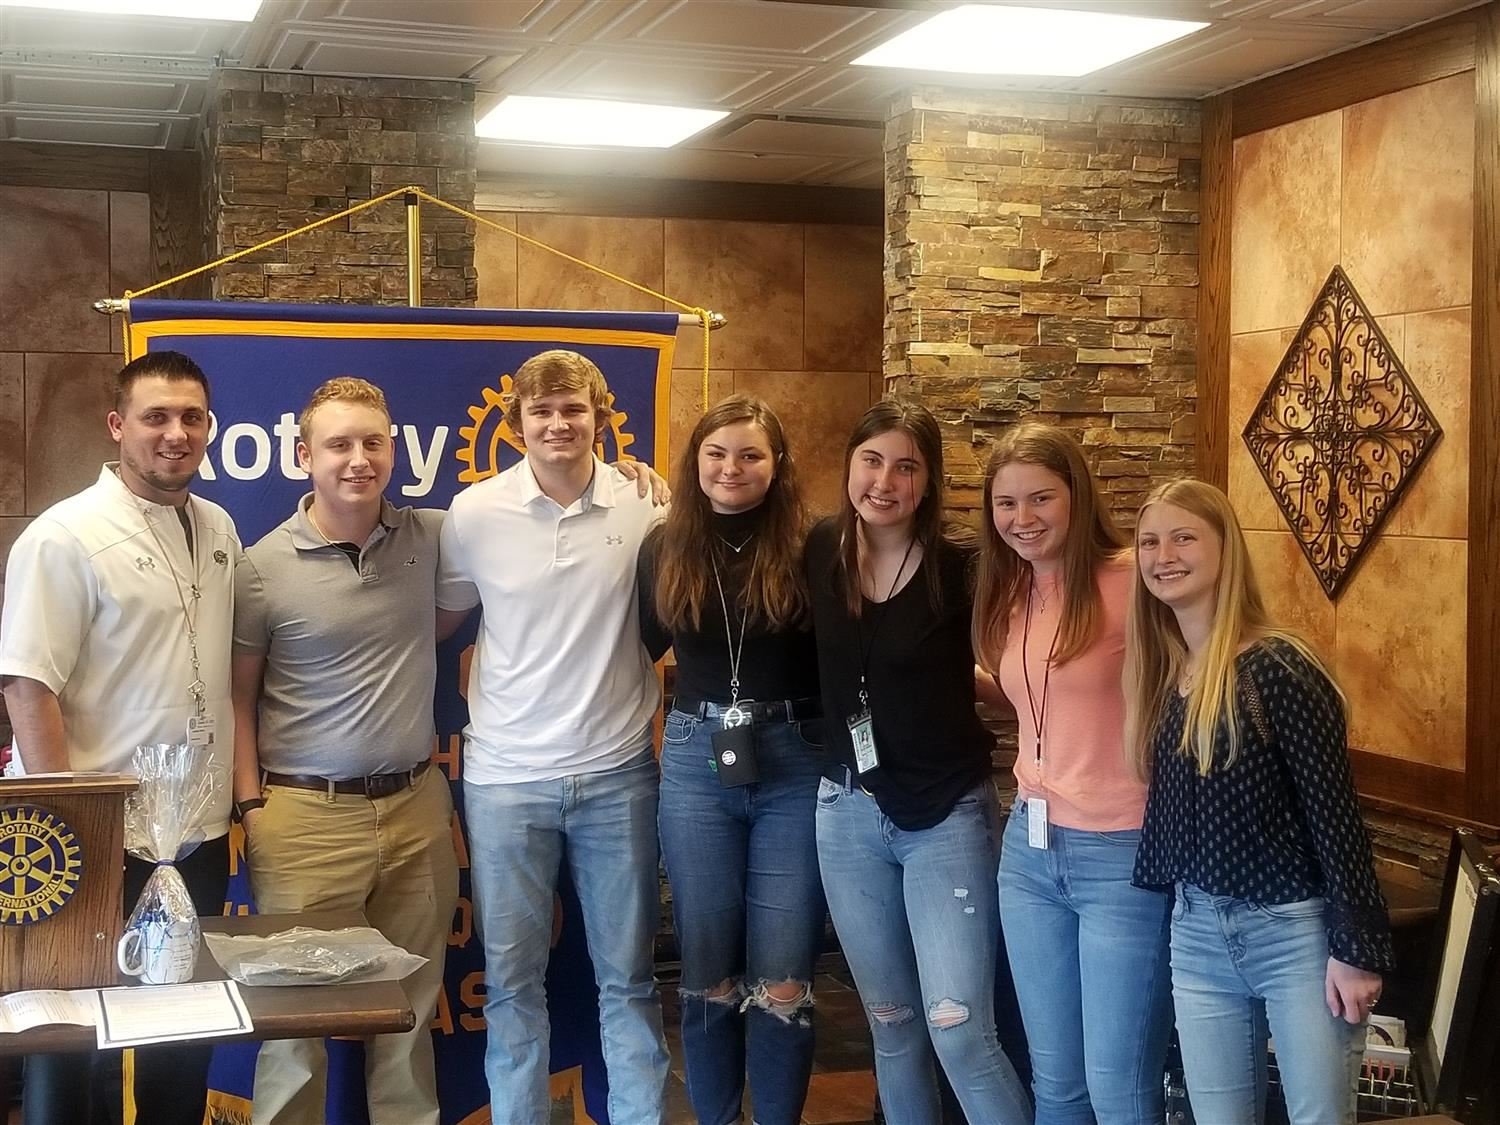 Santa Fe High School Fire Safety Club Presents to Rotary Club of the Mainland